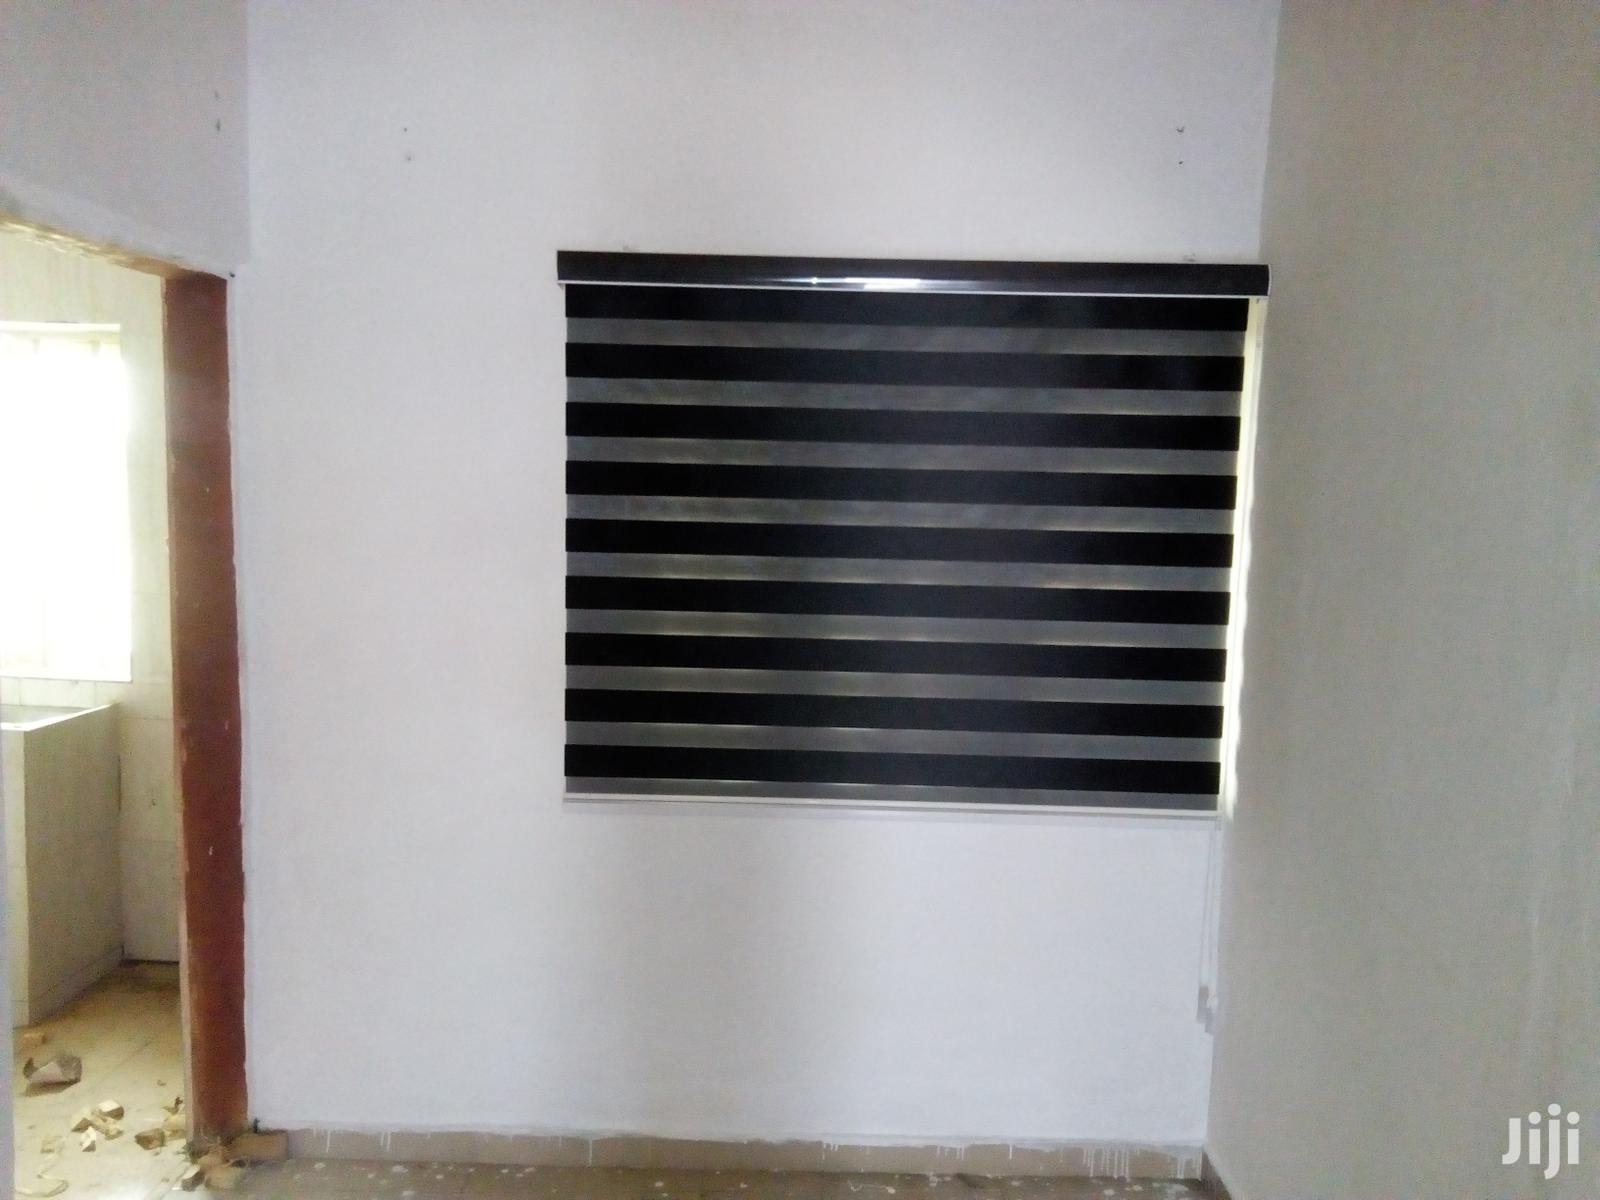 Window Blinds | Home Accessories for sale in Ikeja, Lagos State, Nigeria